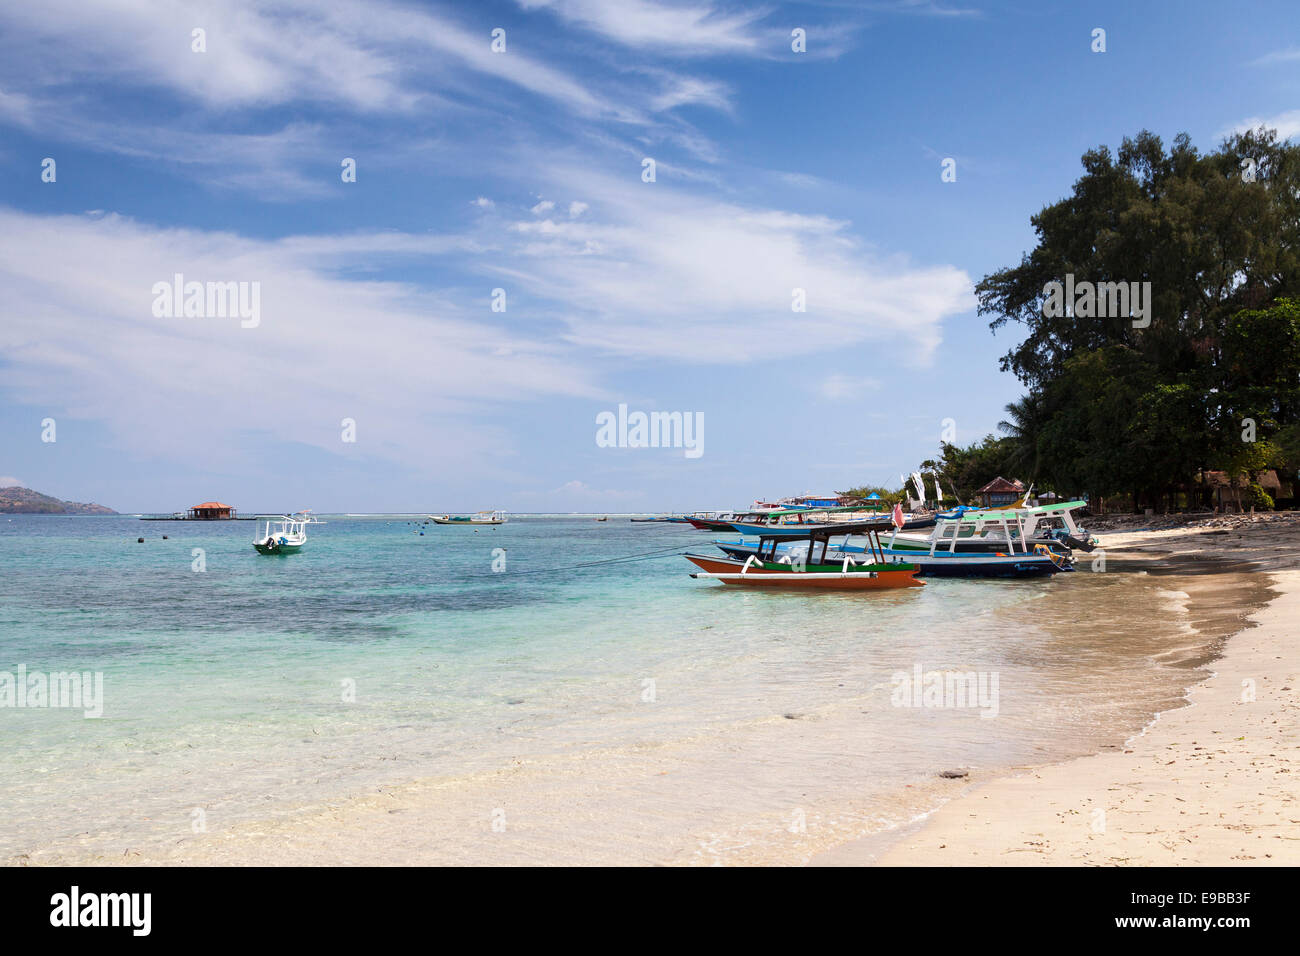 'Gili Air' beach and tropical sea, 'Gili Islands', Lombok, Indonesia - Stock Image